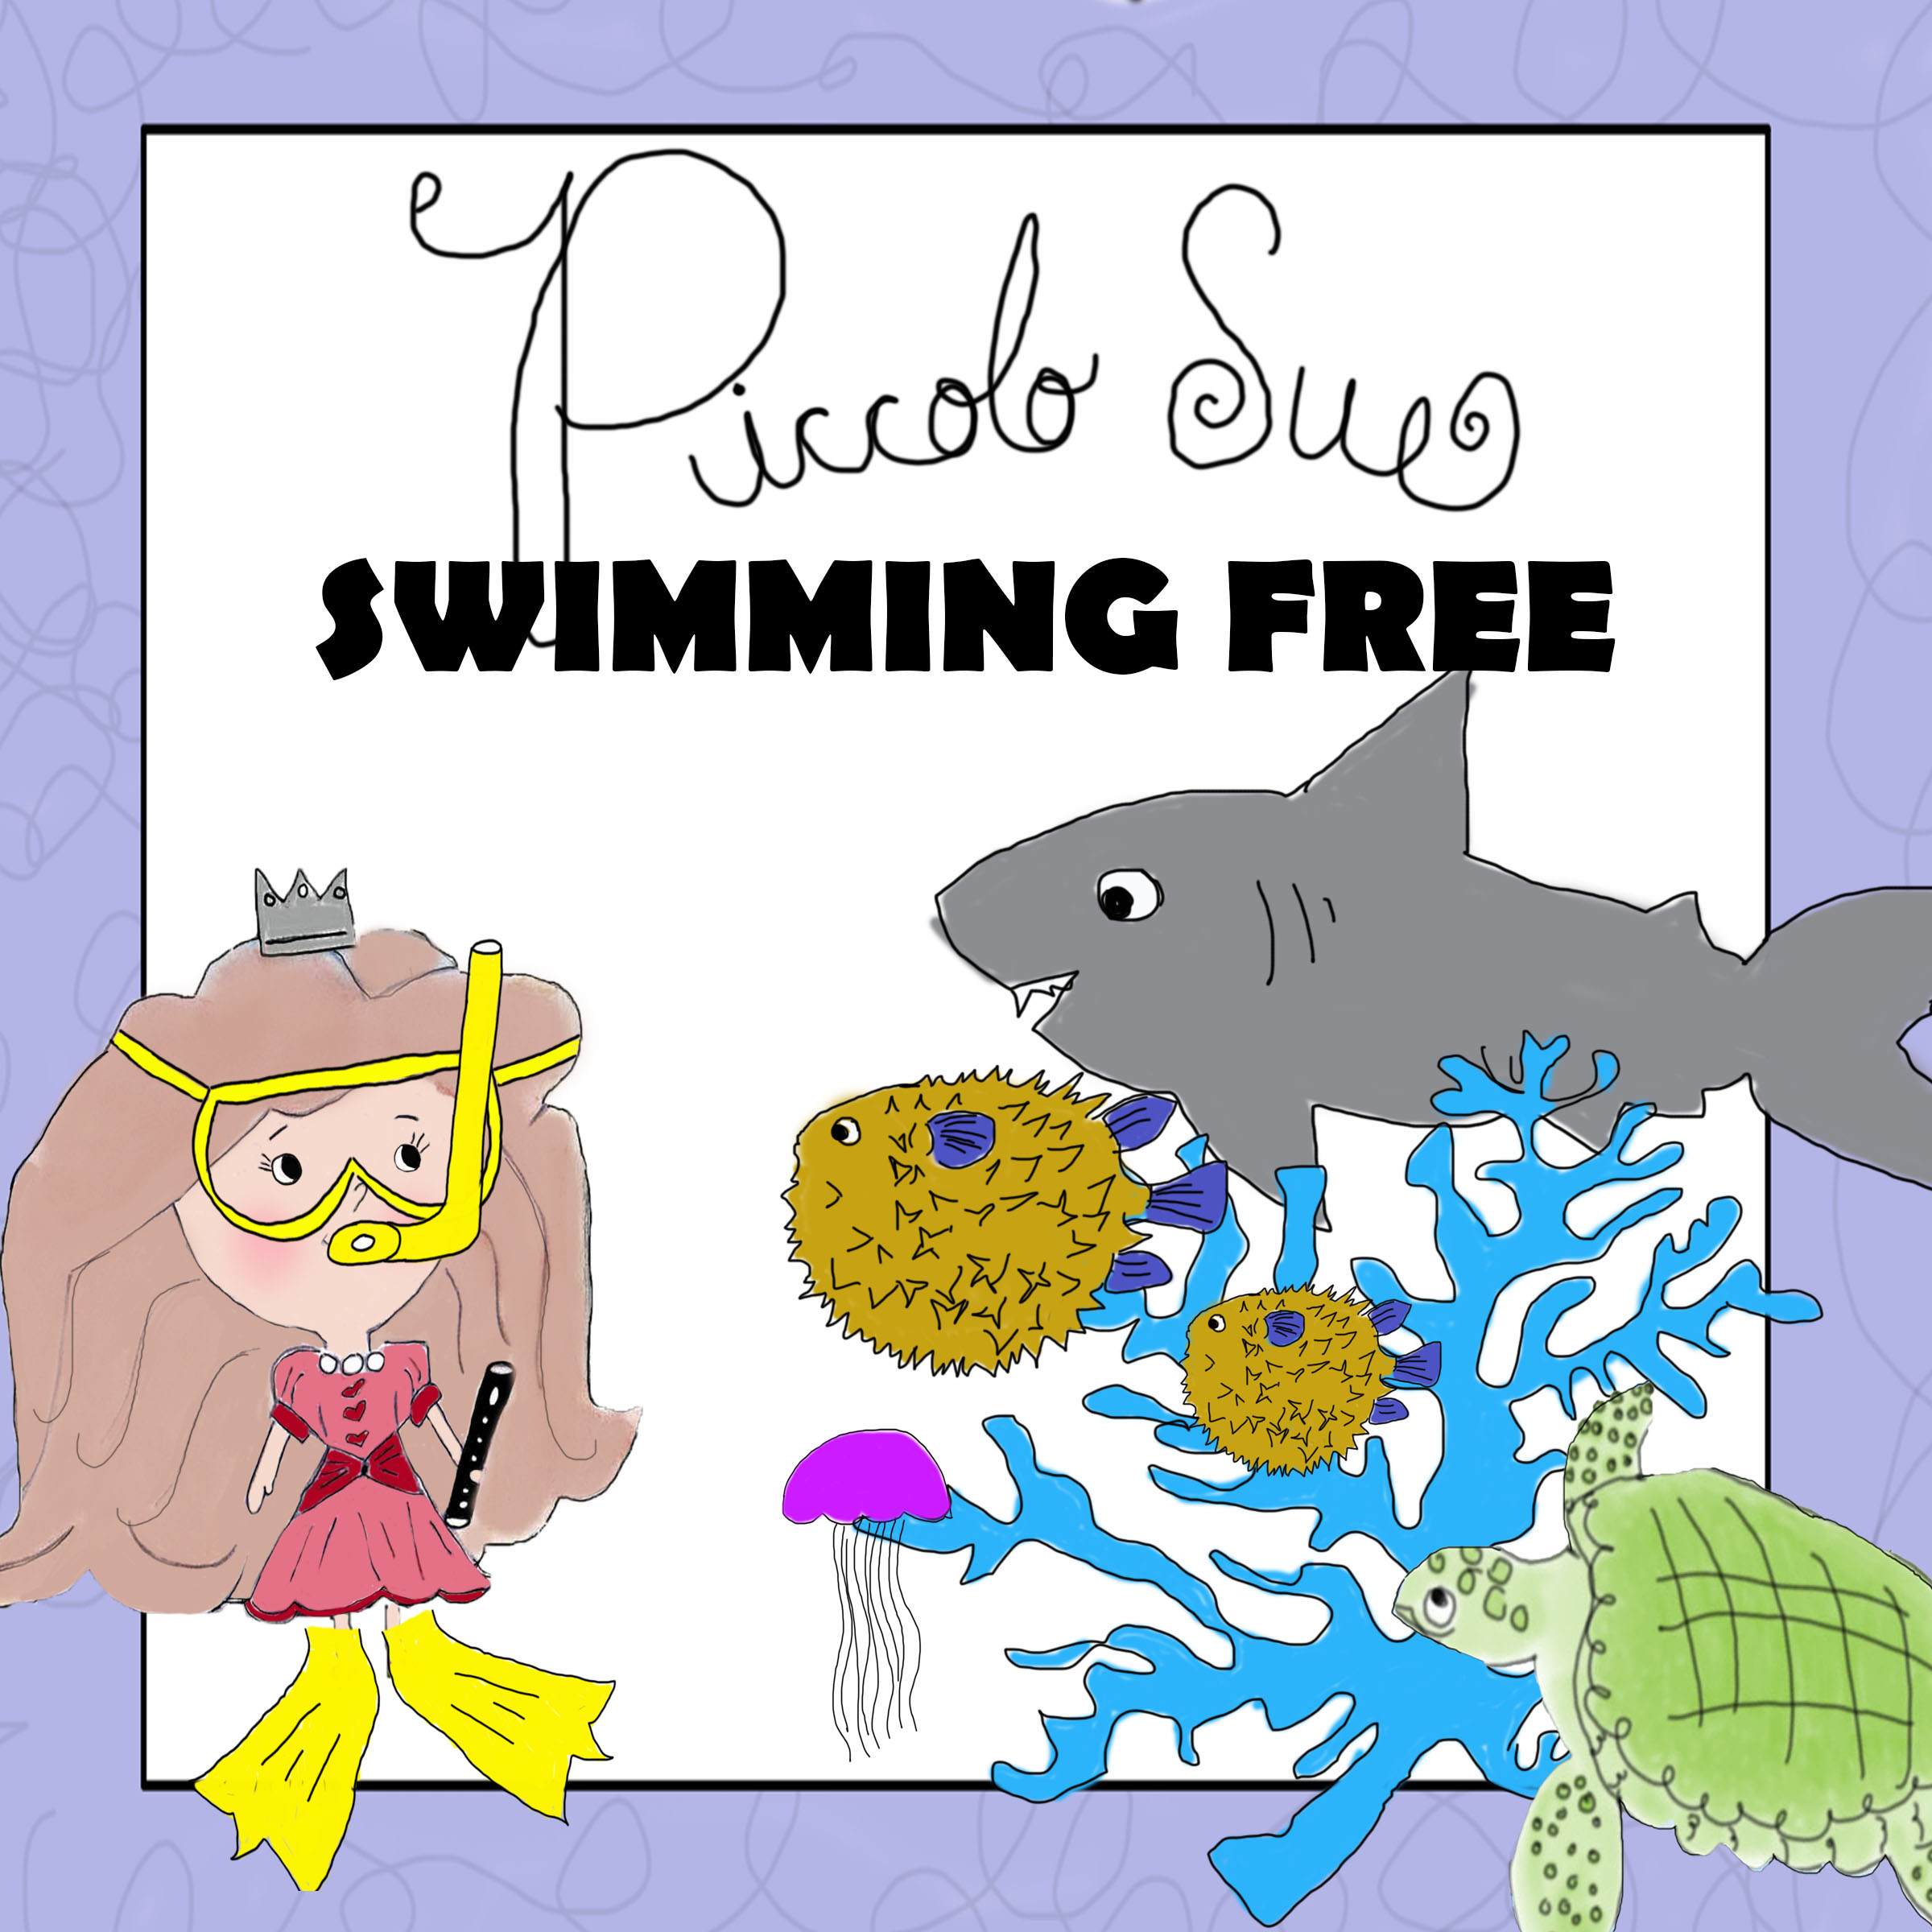 Song VIDEO: Swimming Free